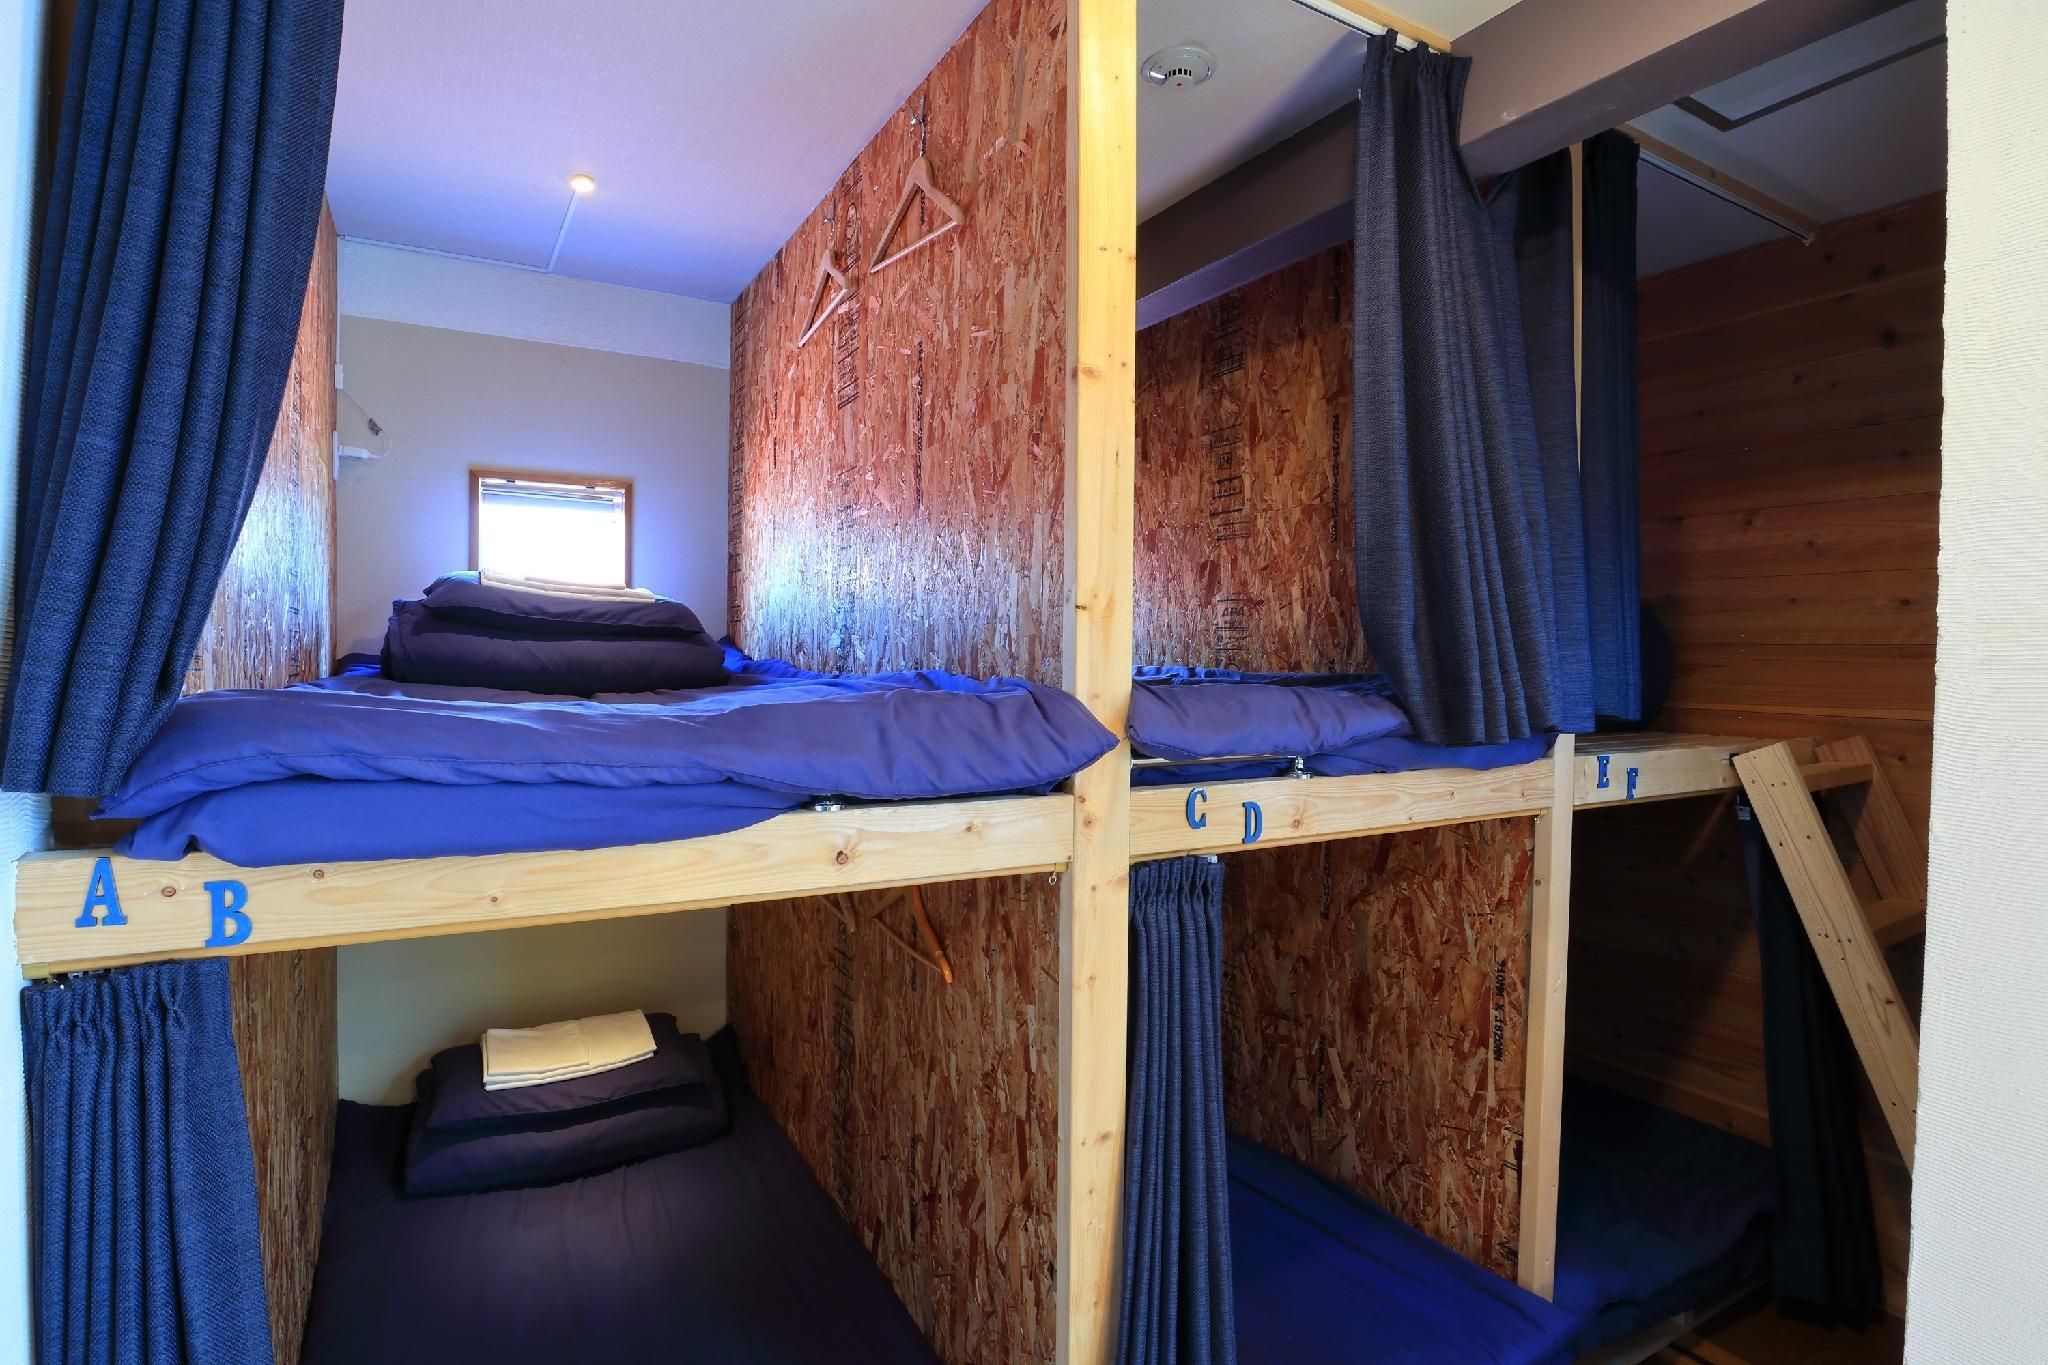 Ranjang Susun di Asrama – Khusus Wanita (Bunk Bed in Female Dormitory Room)